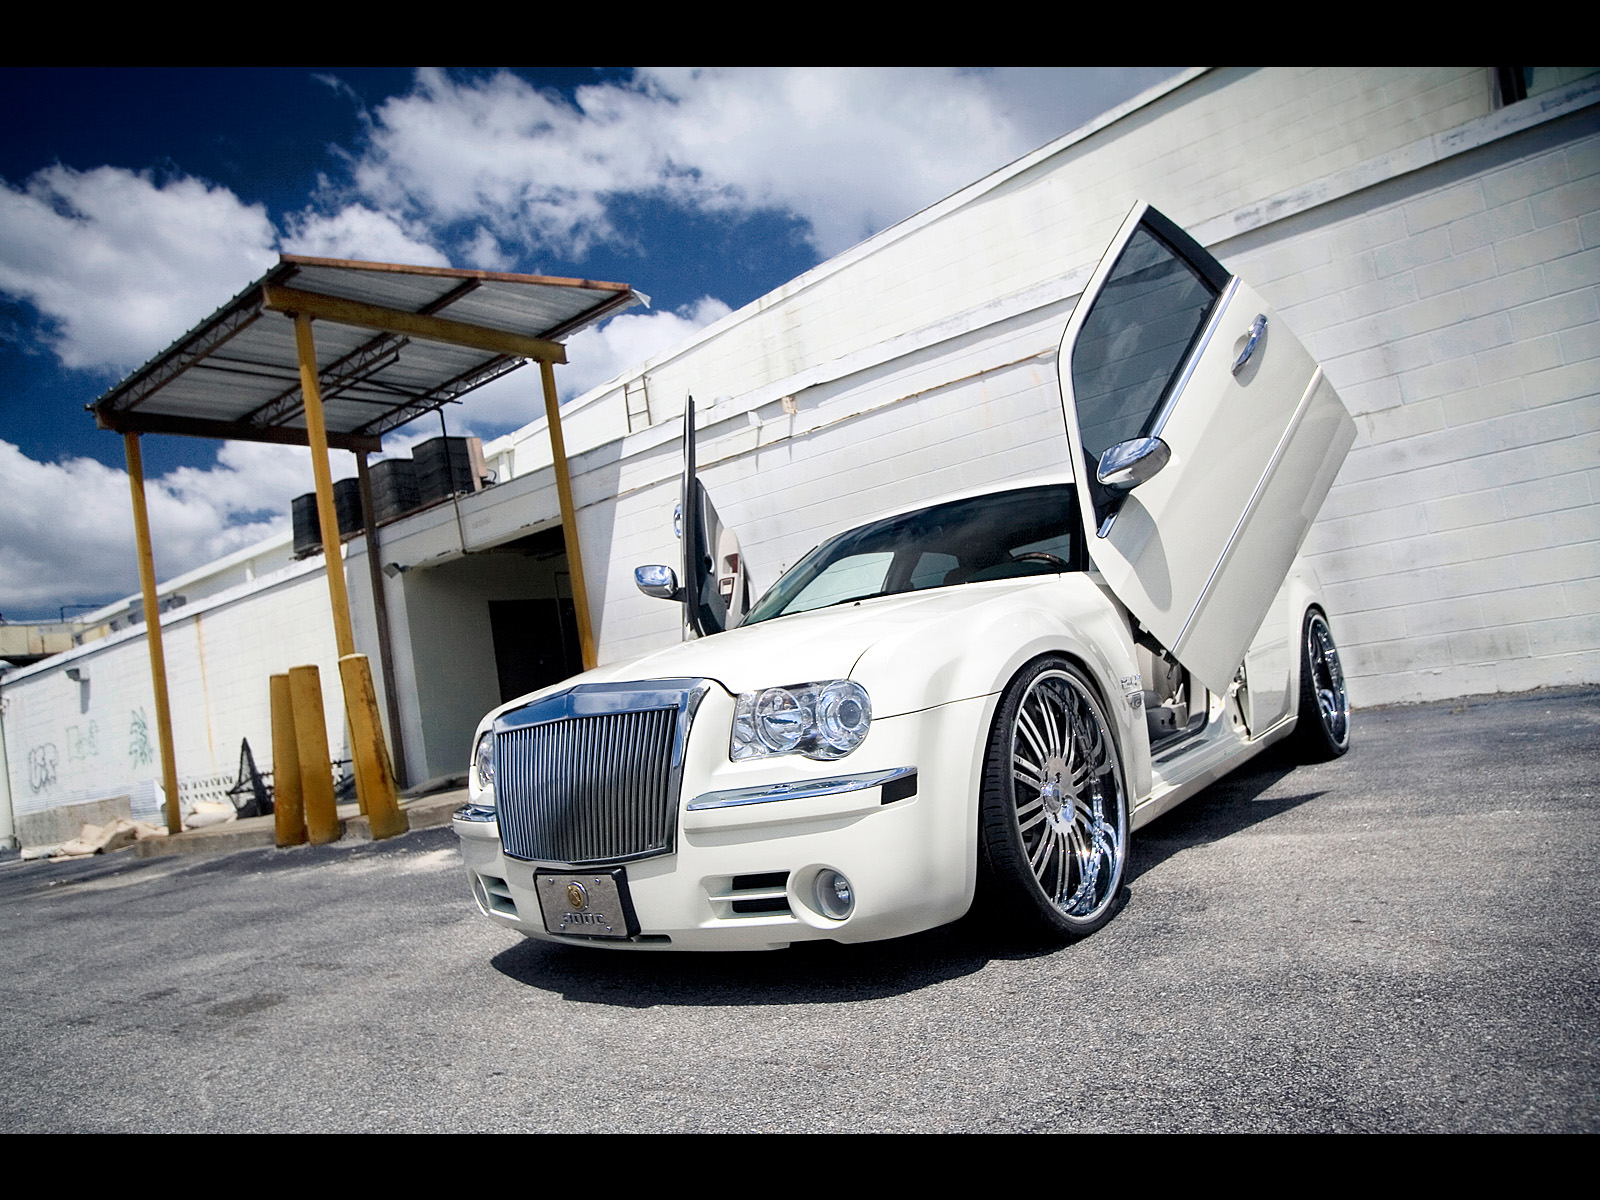 Chrysler on Modified Chrysler 300c Photo Gallery   New Car Reviews   Automotive